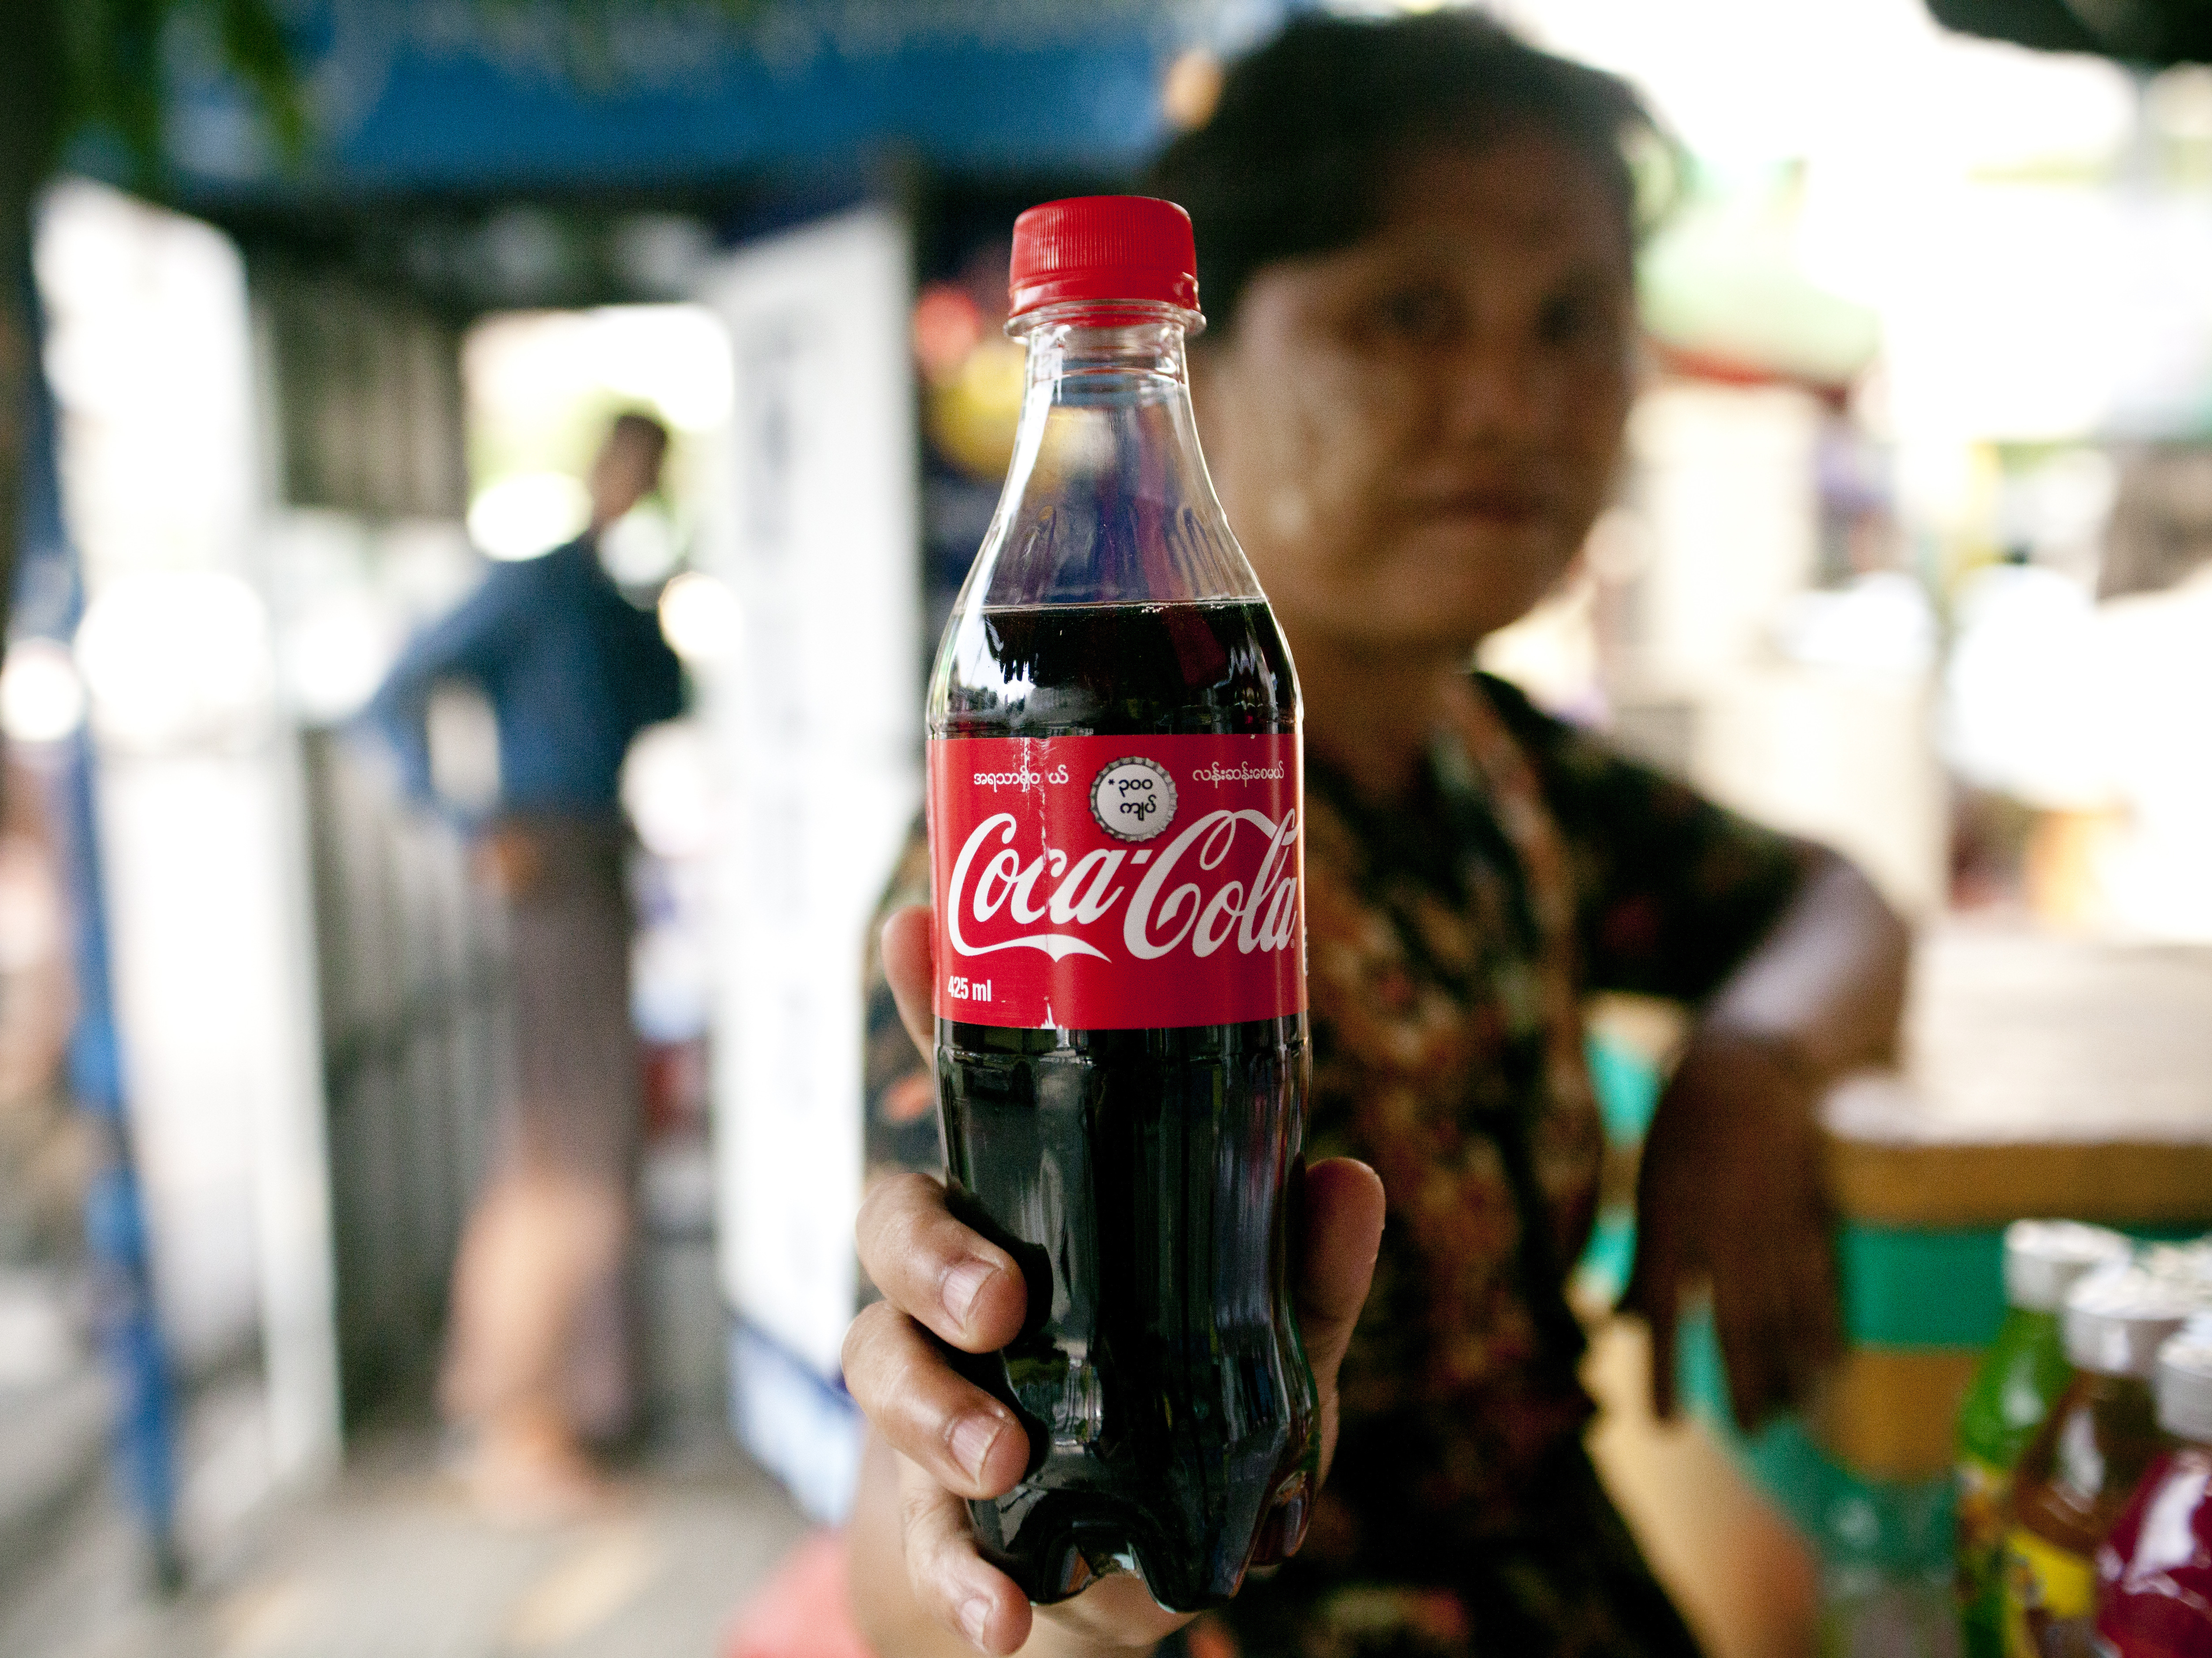 A street vendor holds up a Coca-Cola bottle in Yangon, Myanmar.